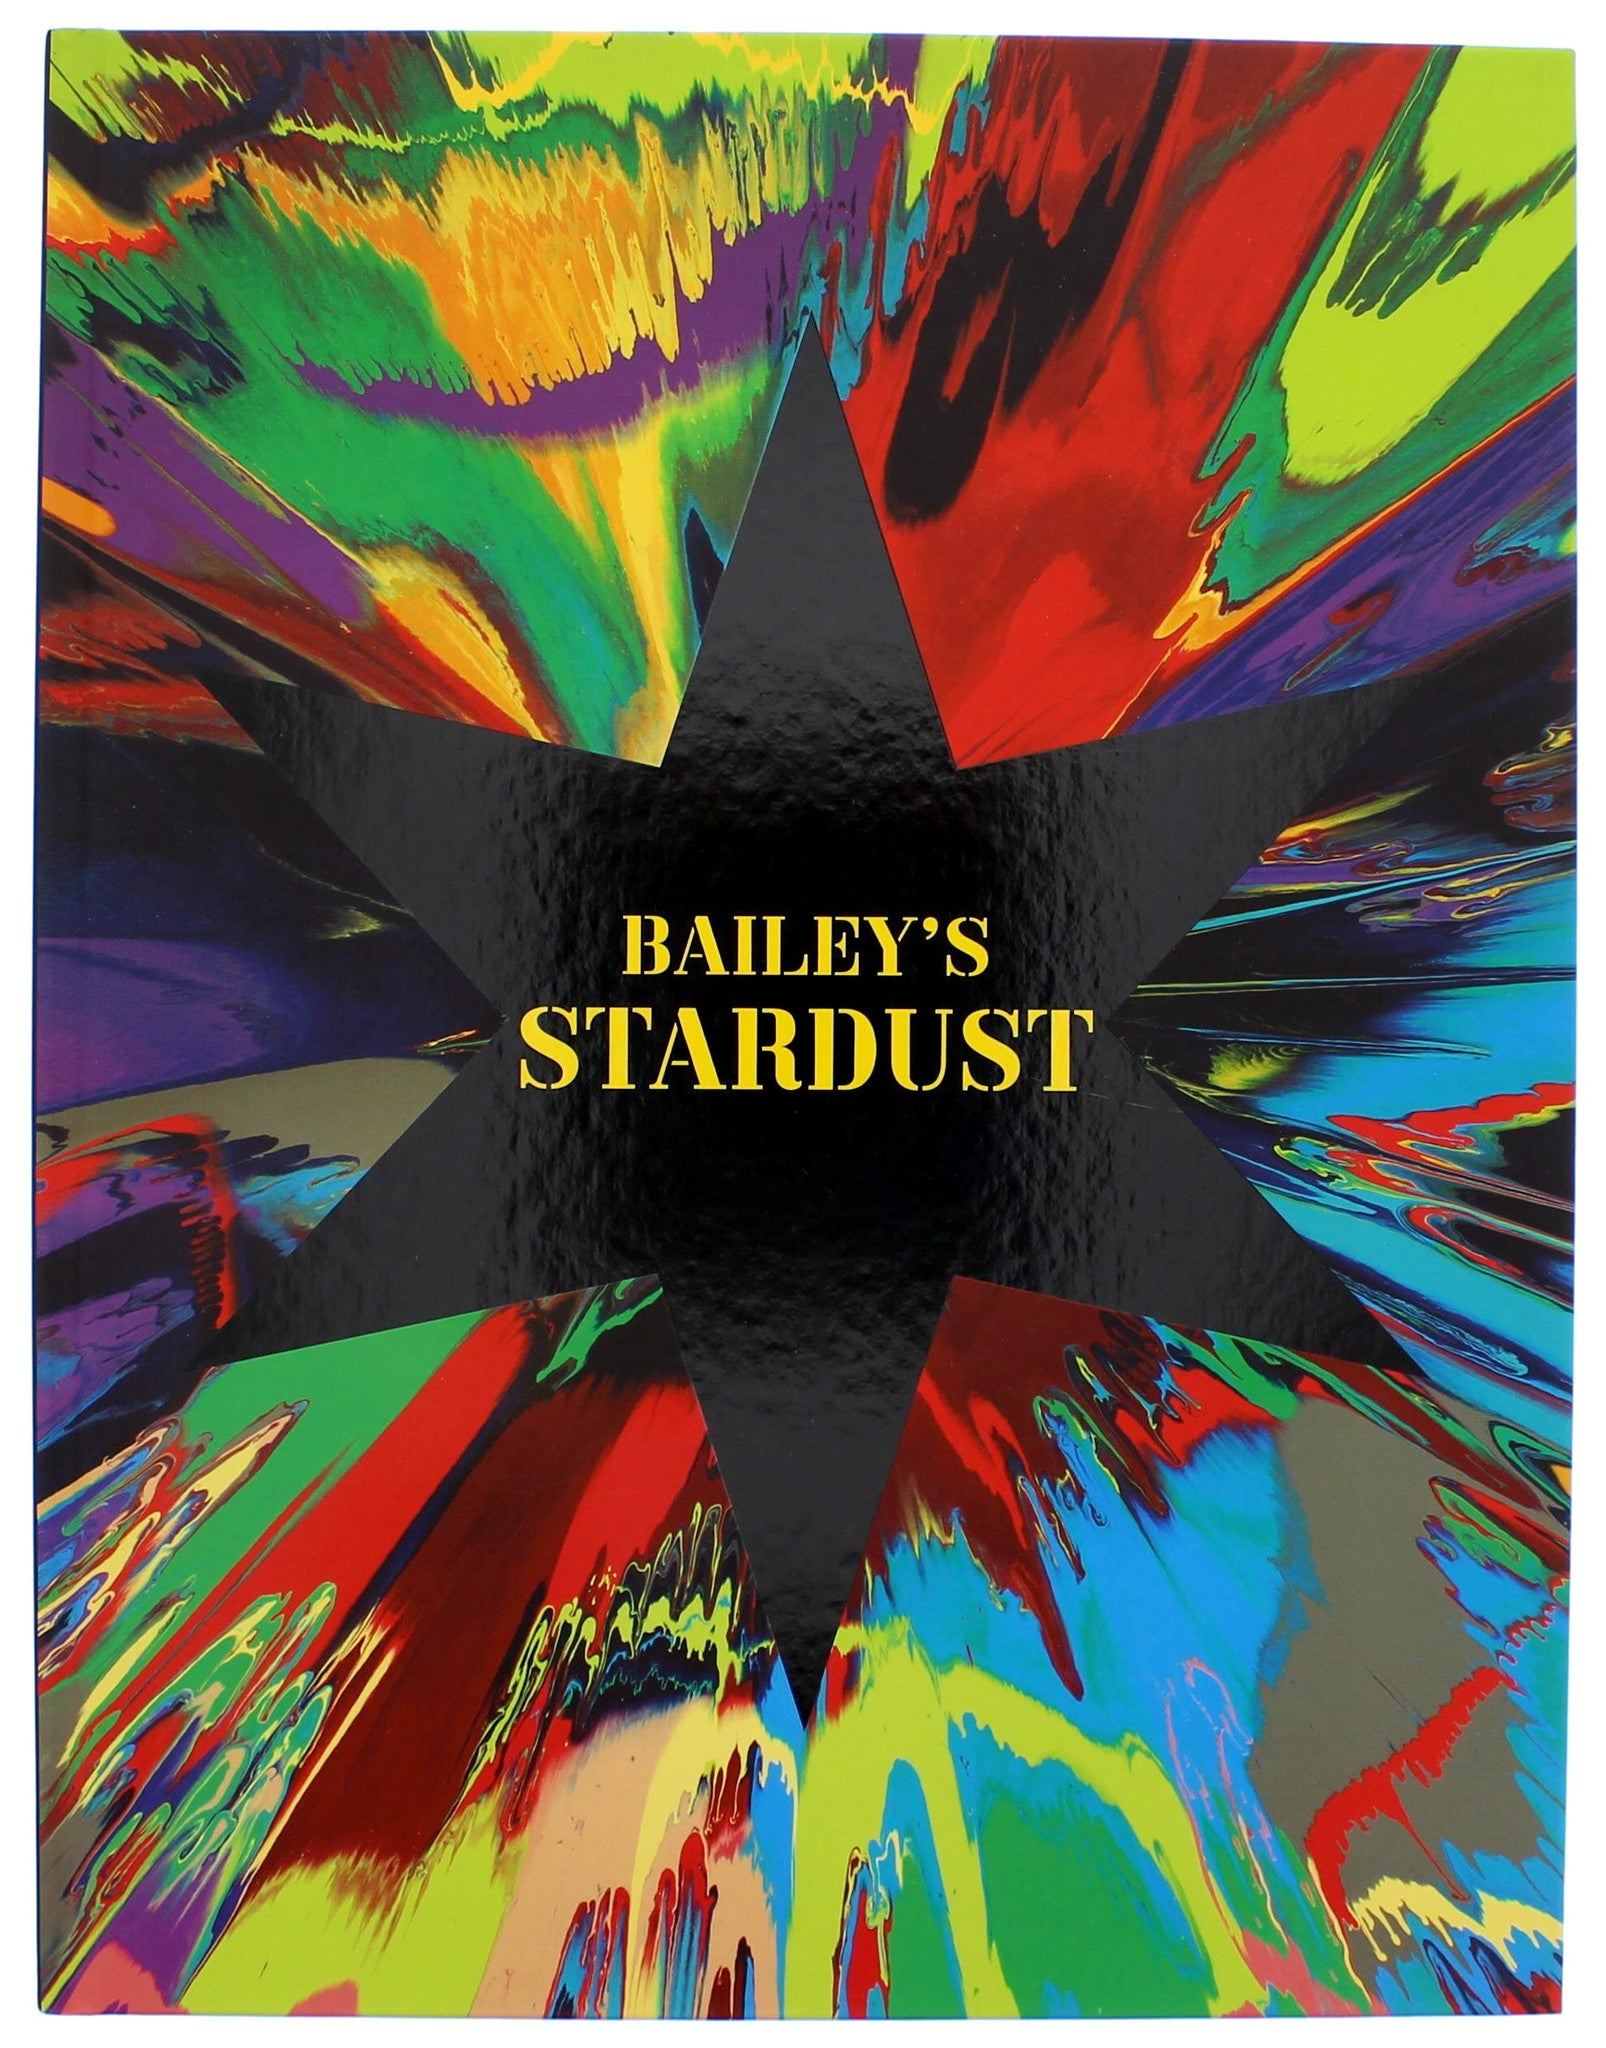 Bailey's Stardust Hardcover Catalogue Signed